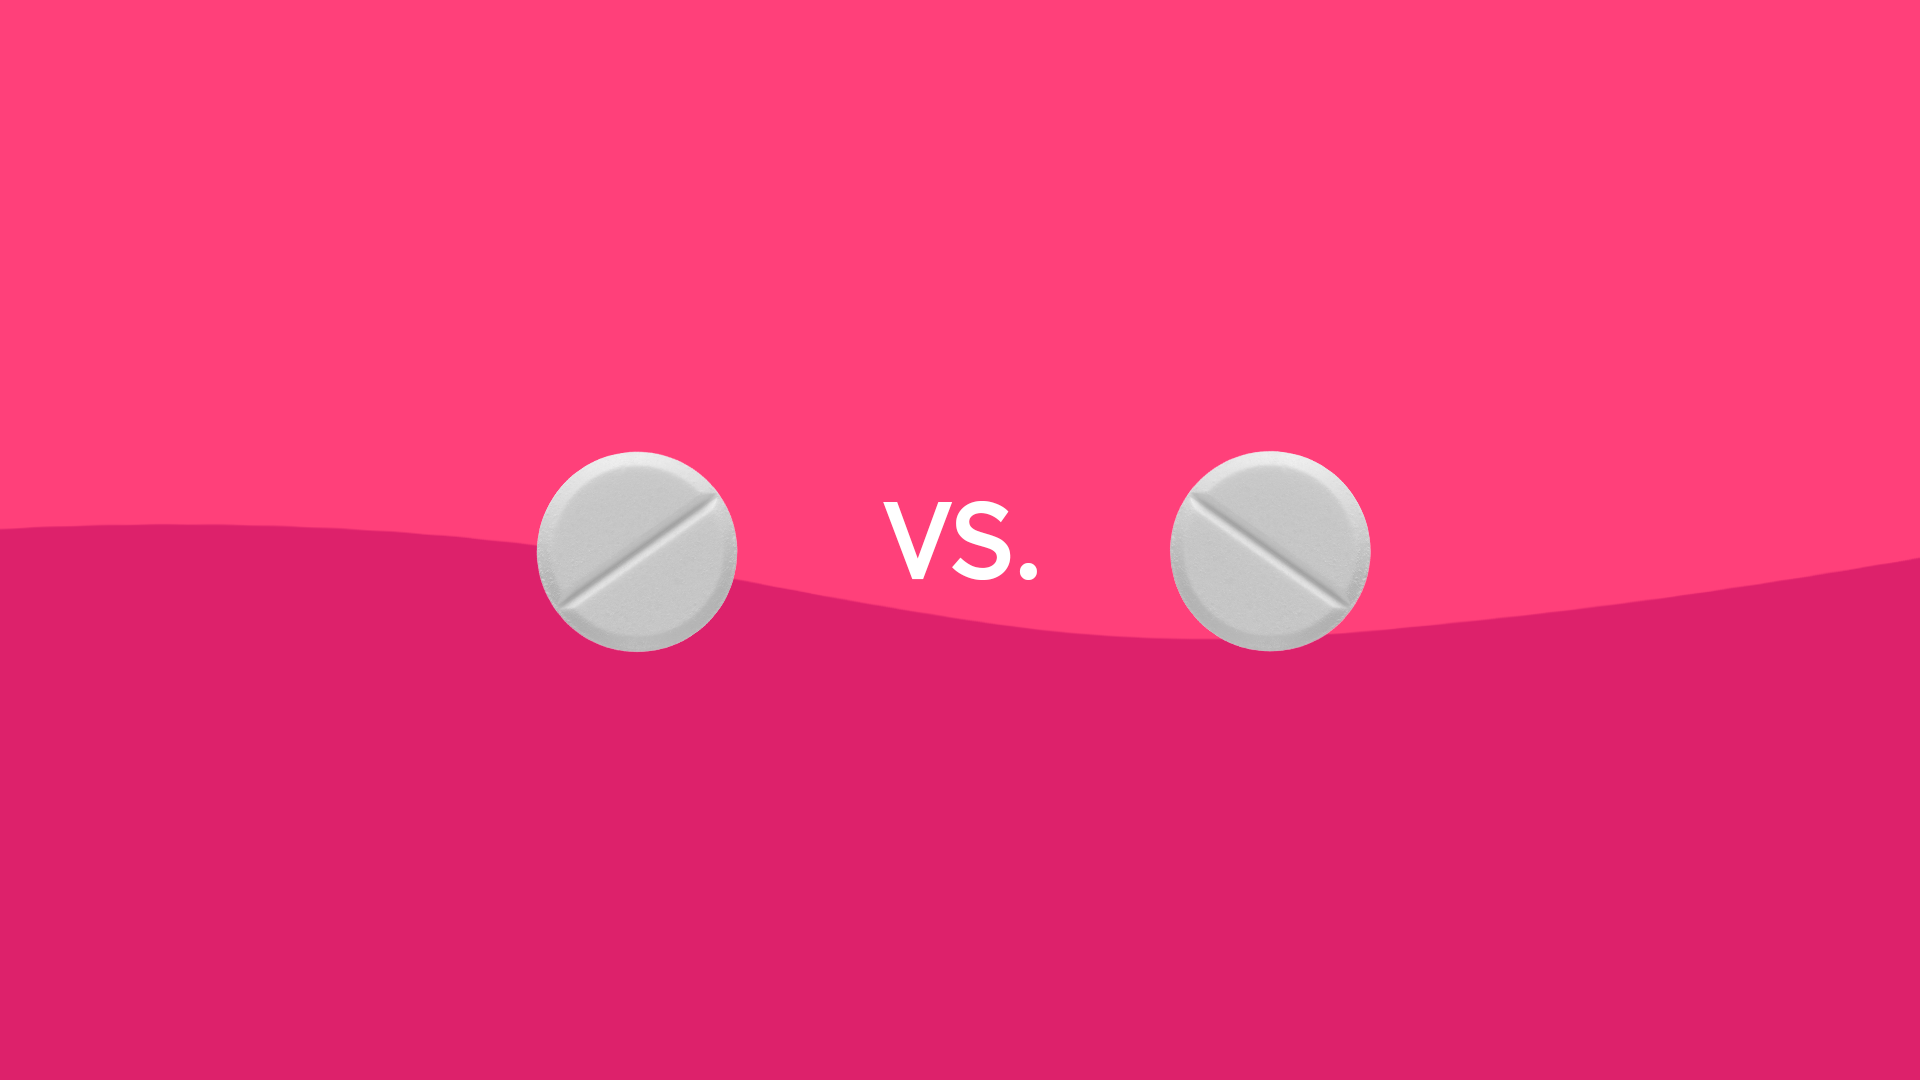 Levitra Vs Cialis Differences Similarities And Which Is Better For You